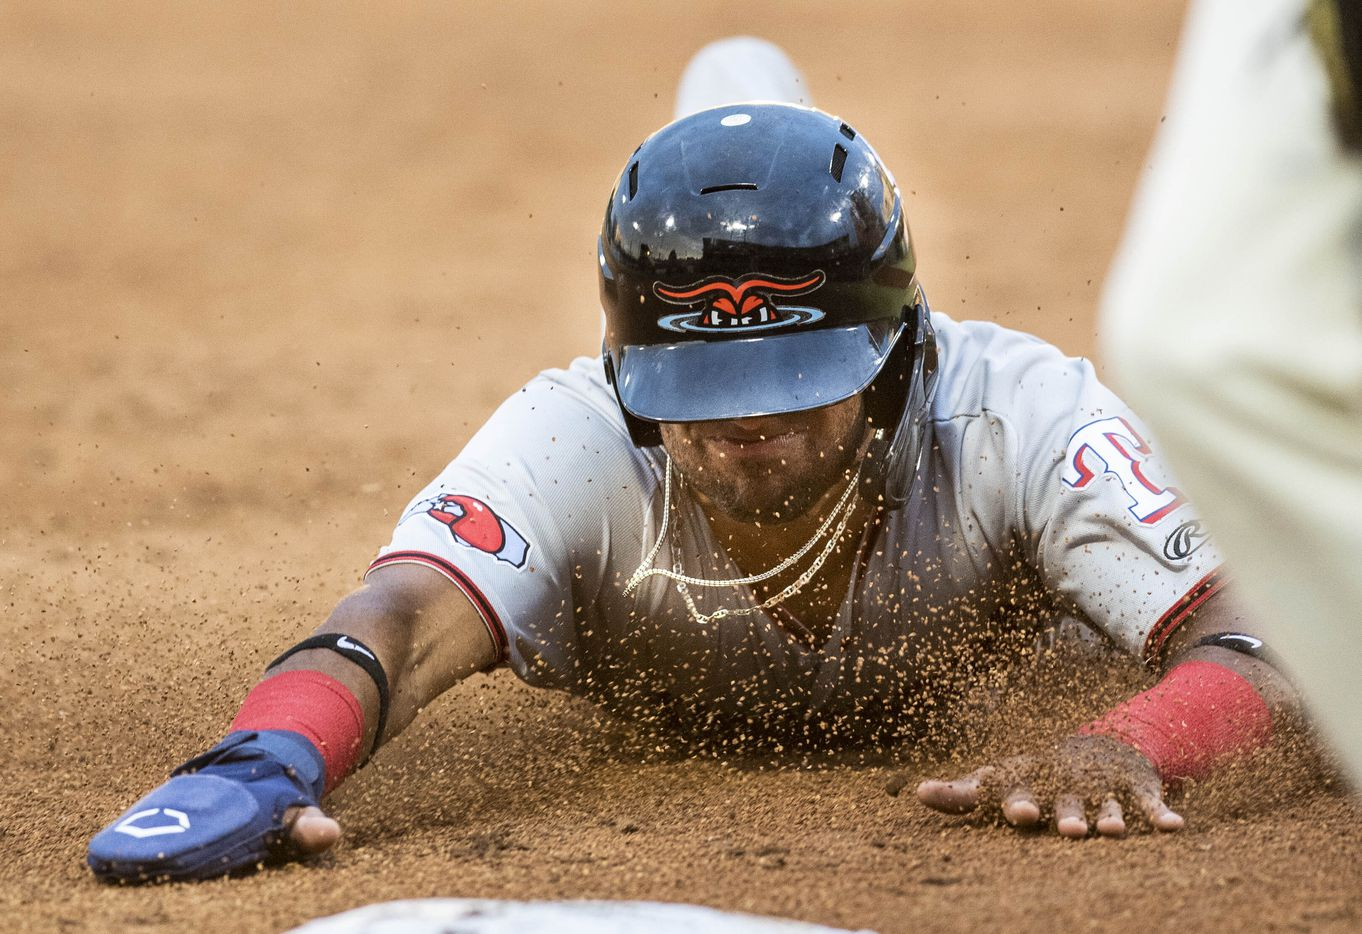 Hickory Crawdad's Ezequiel Duran (17) slides into third base on a hit and run during the game with the Greensboro Grasshopper's at First National Bank Field on Friday, August 6, 2021 in Greensboro, N.C. (Woody Marshall/Special Contributor)